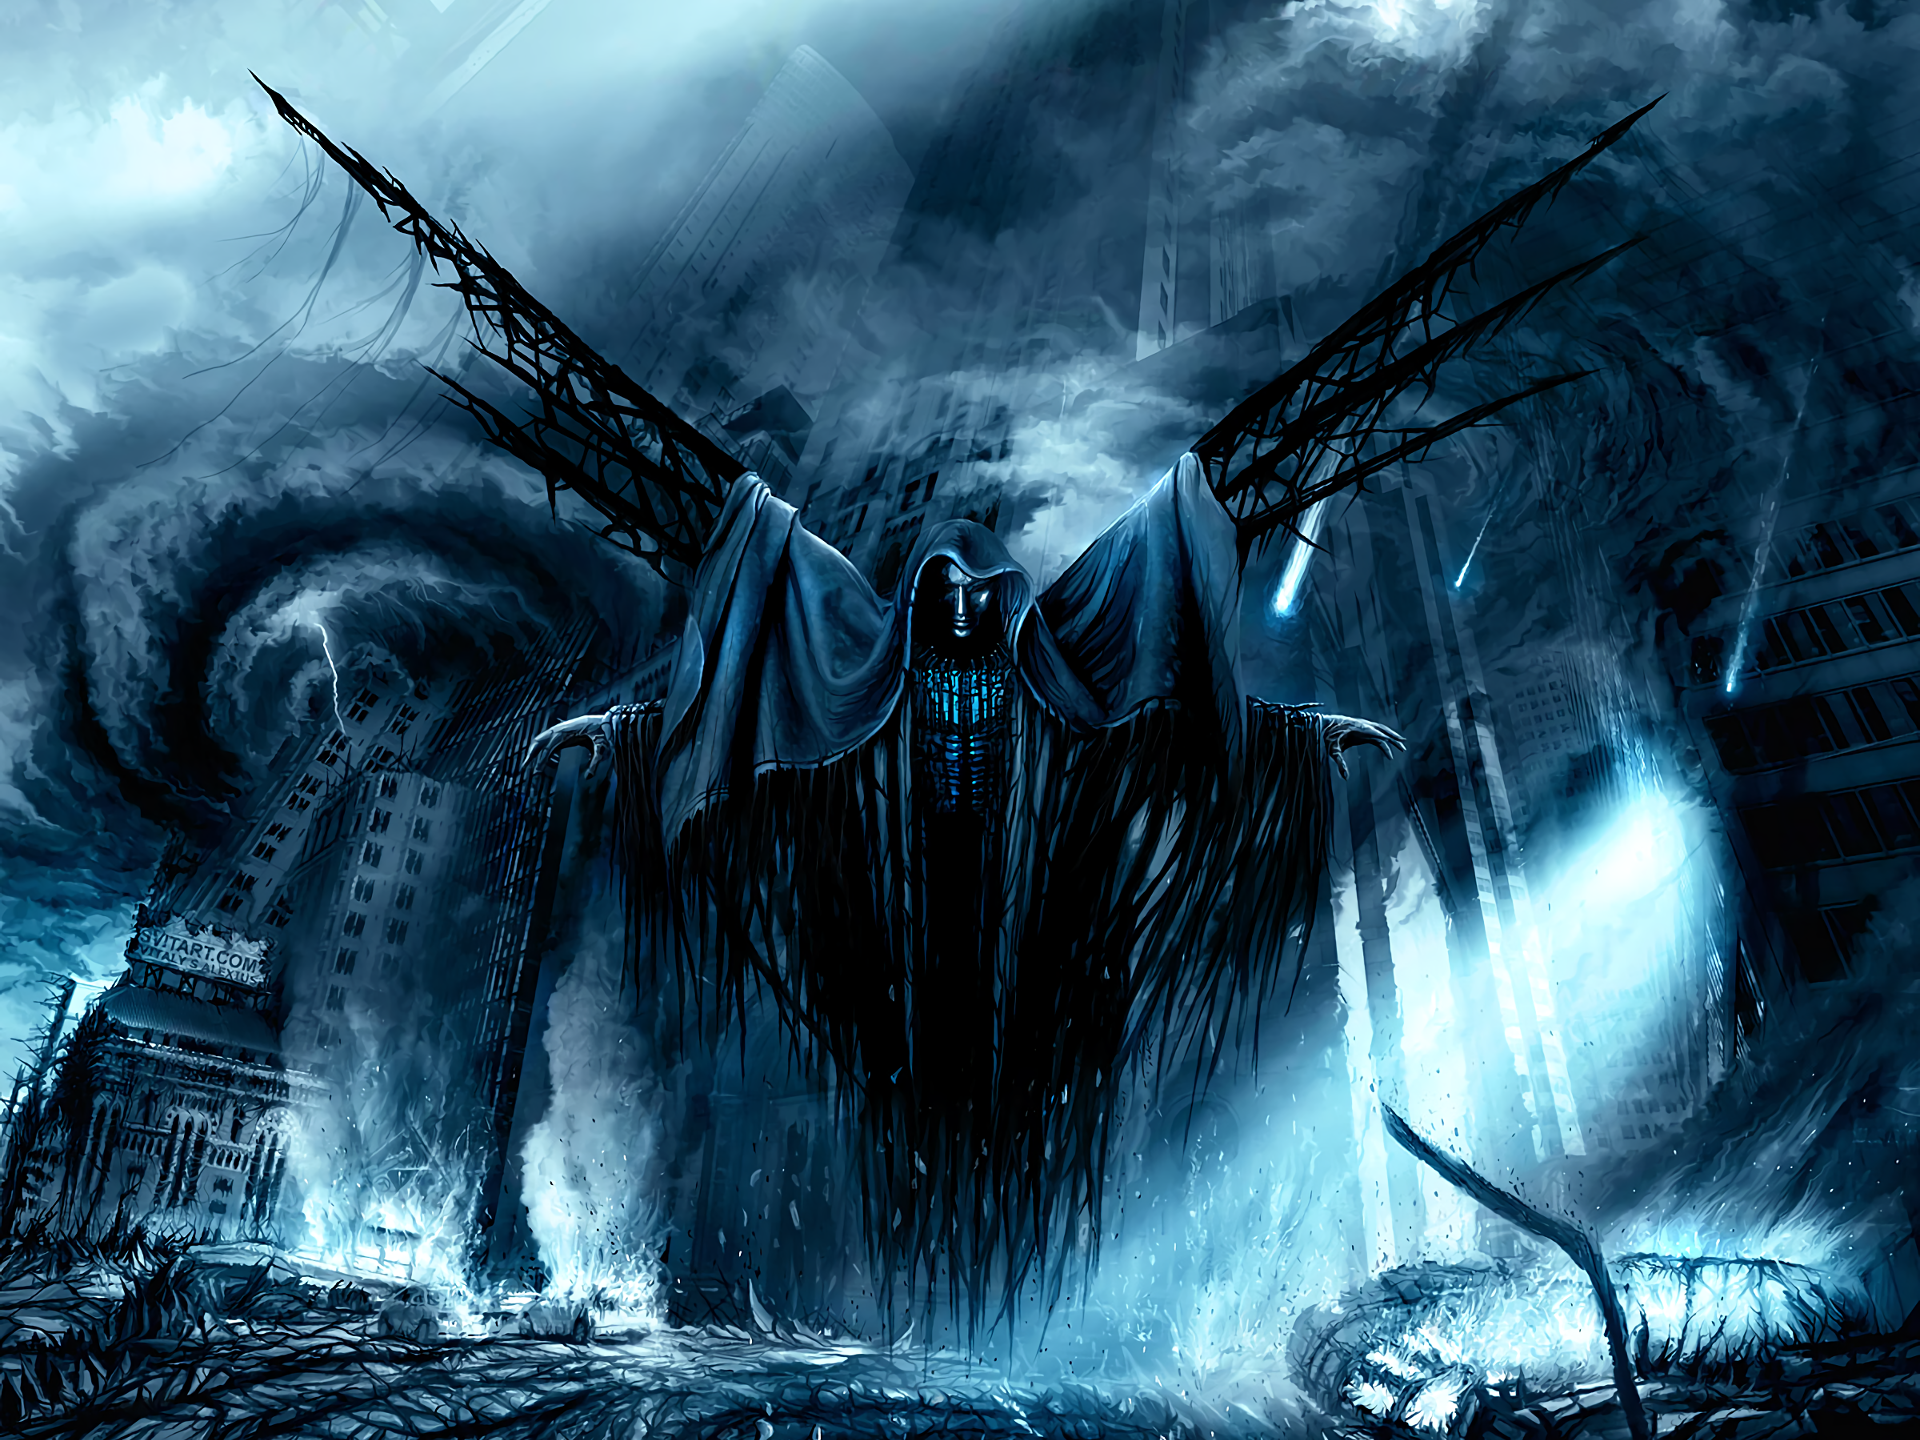 apocalyptic demon fantasy hd wallpaper background image